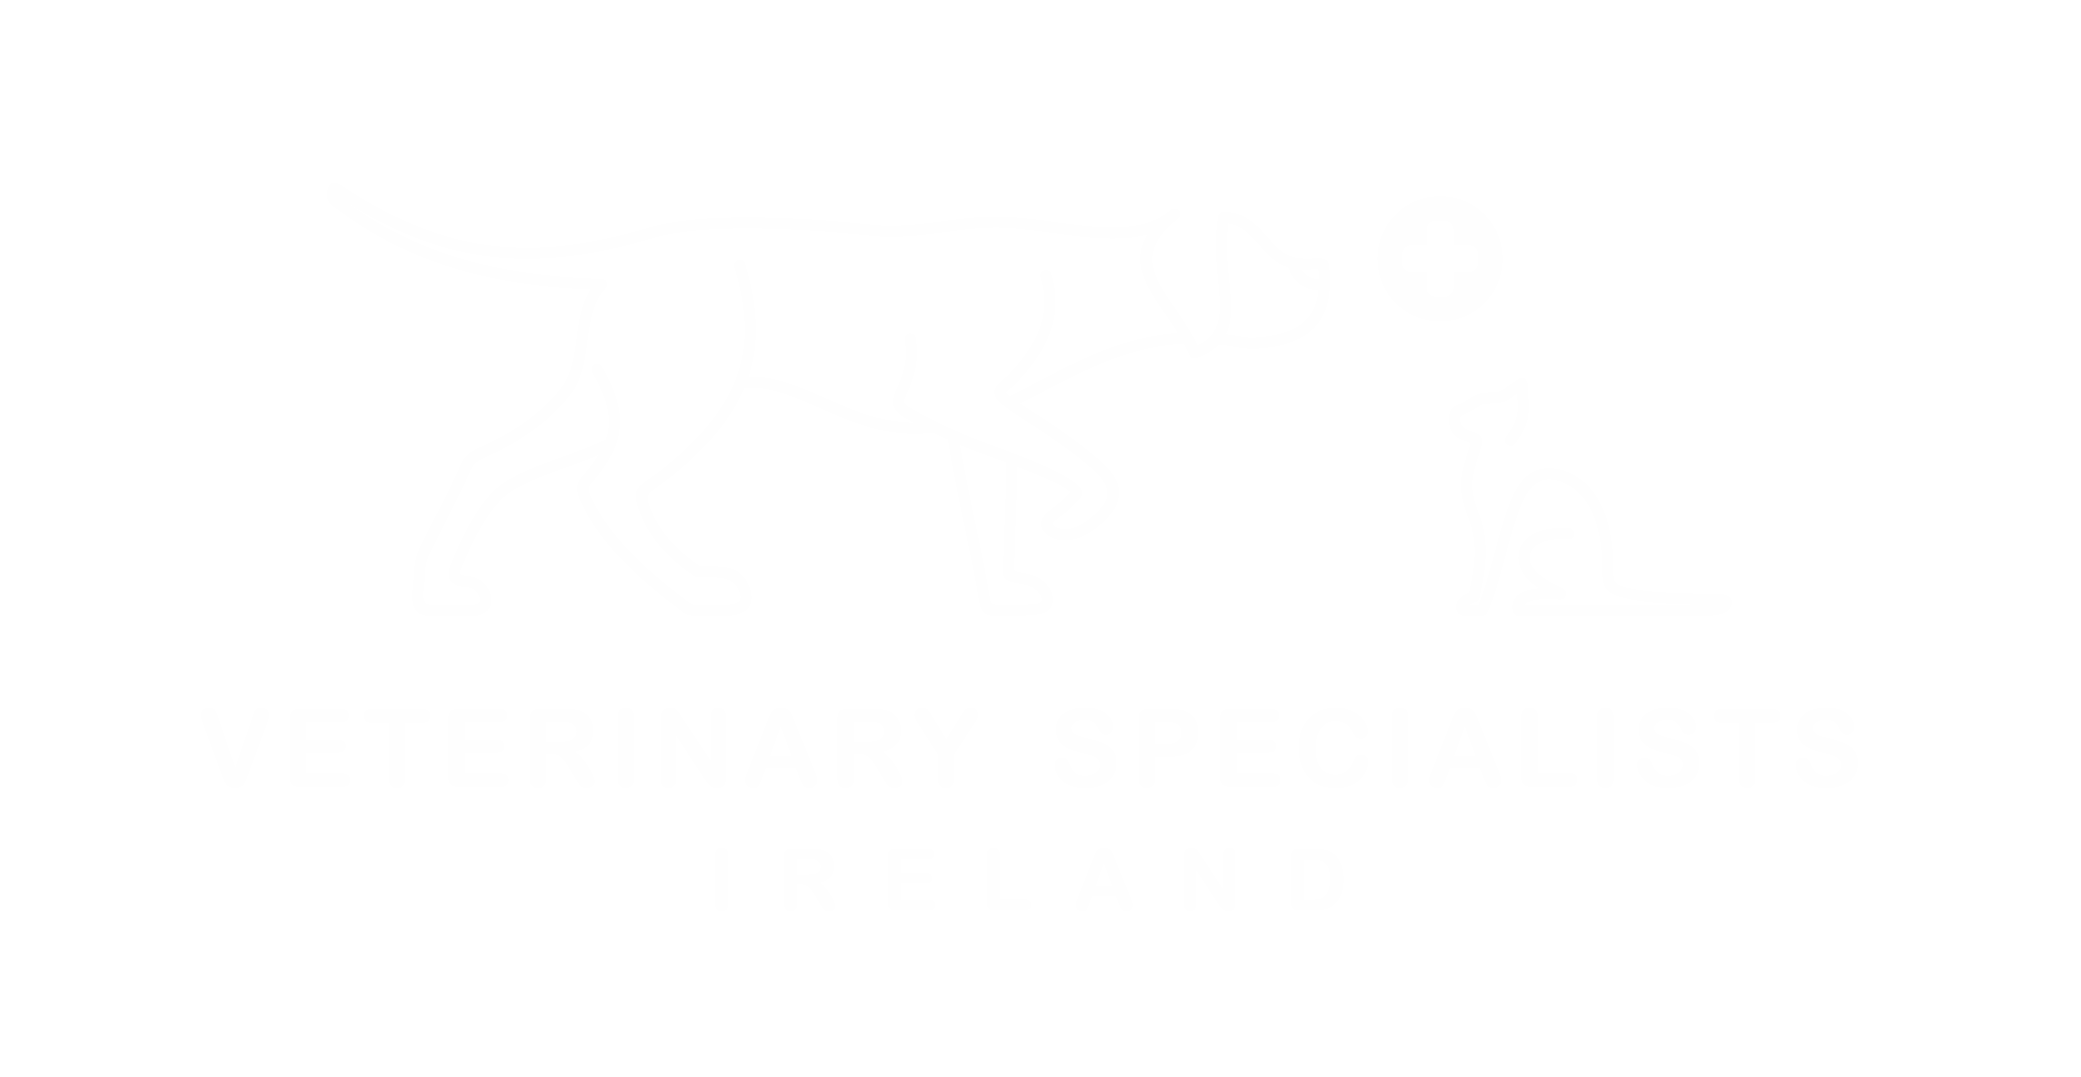 Veterinary Specialists Ireland